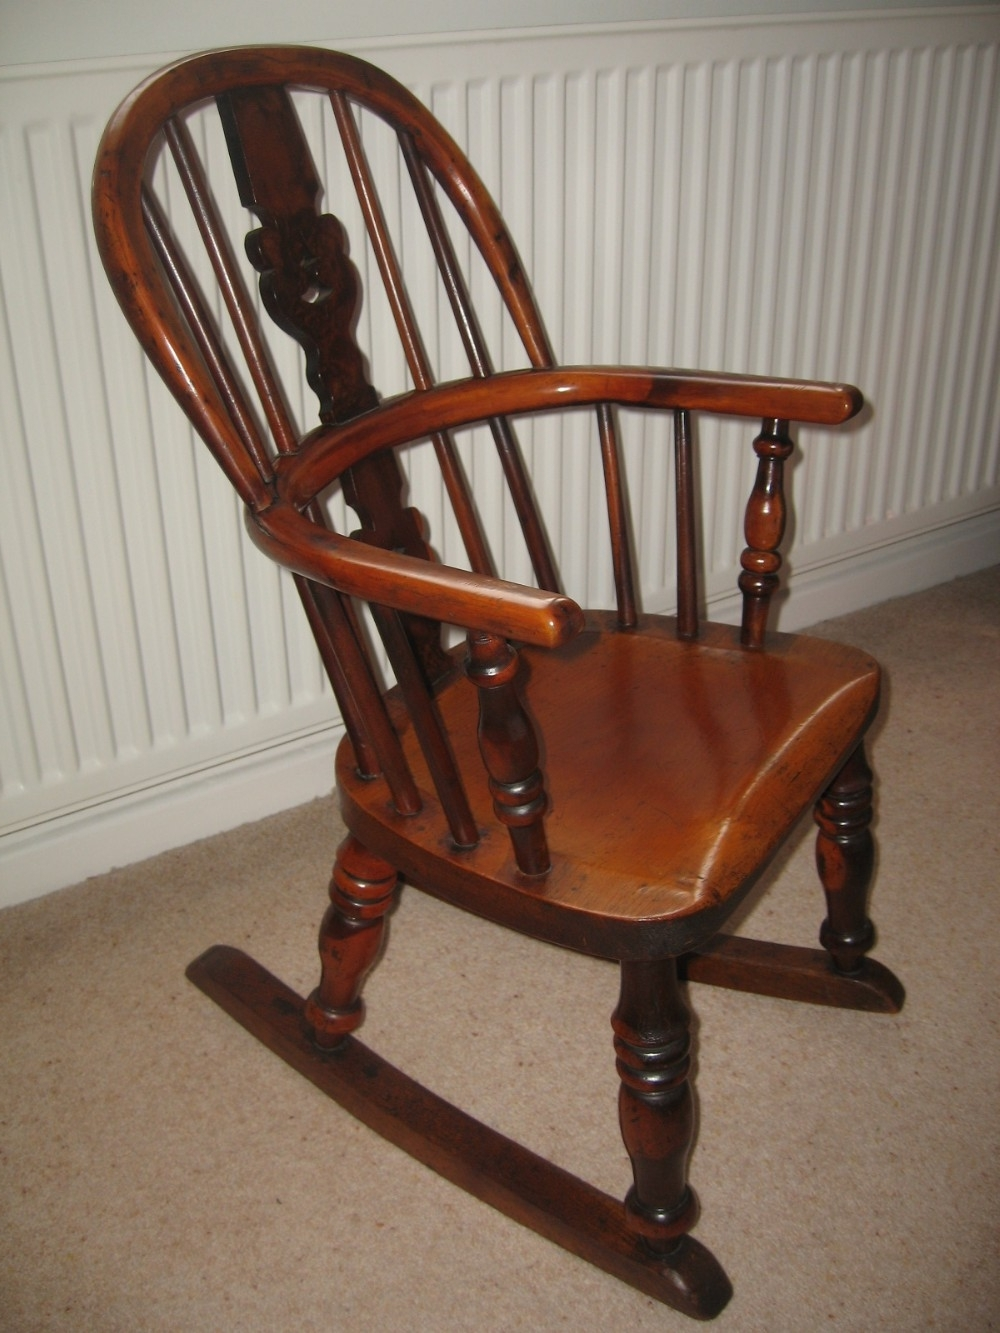 Rocking Chairs With Springs Intended For Newest Antique Rocking Chairs With Springs – Antique Rocking Chairs (View 11 of 20)